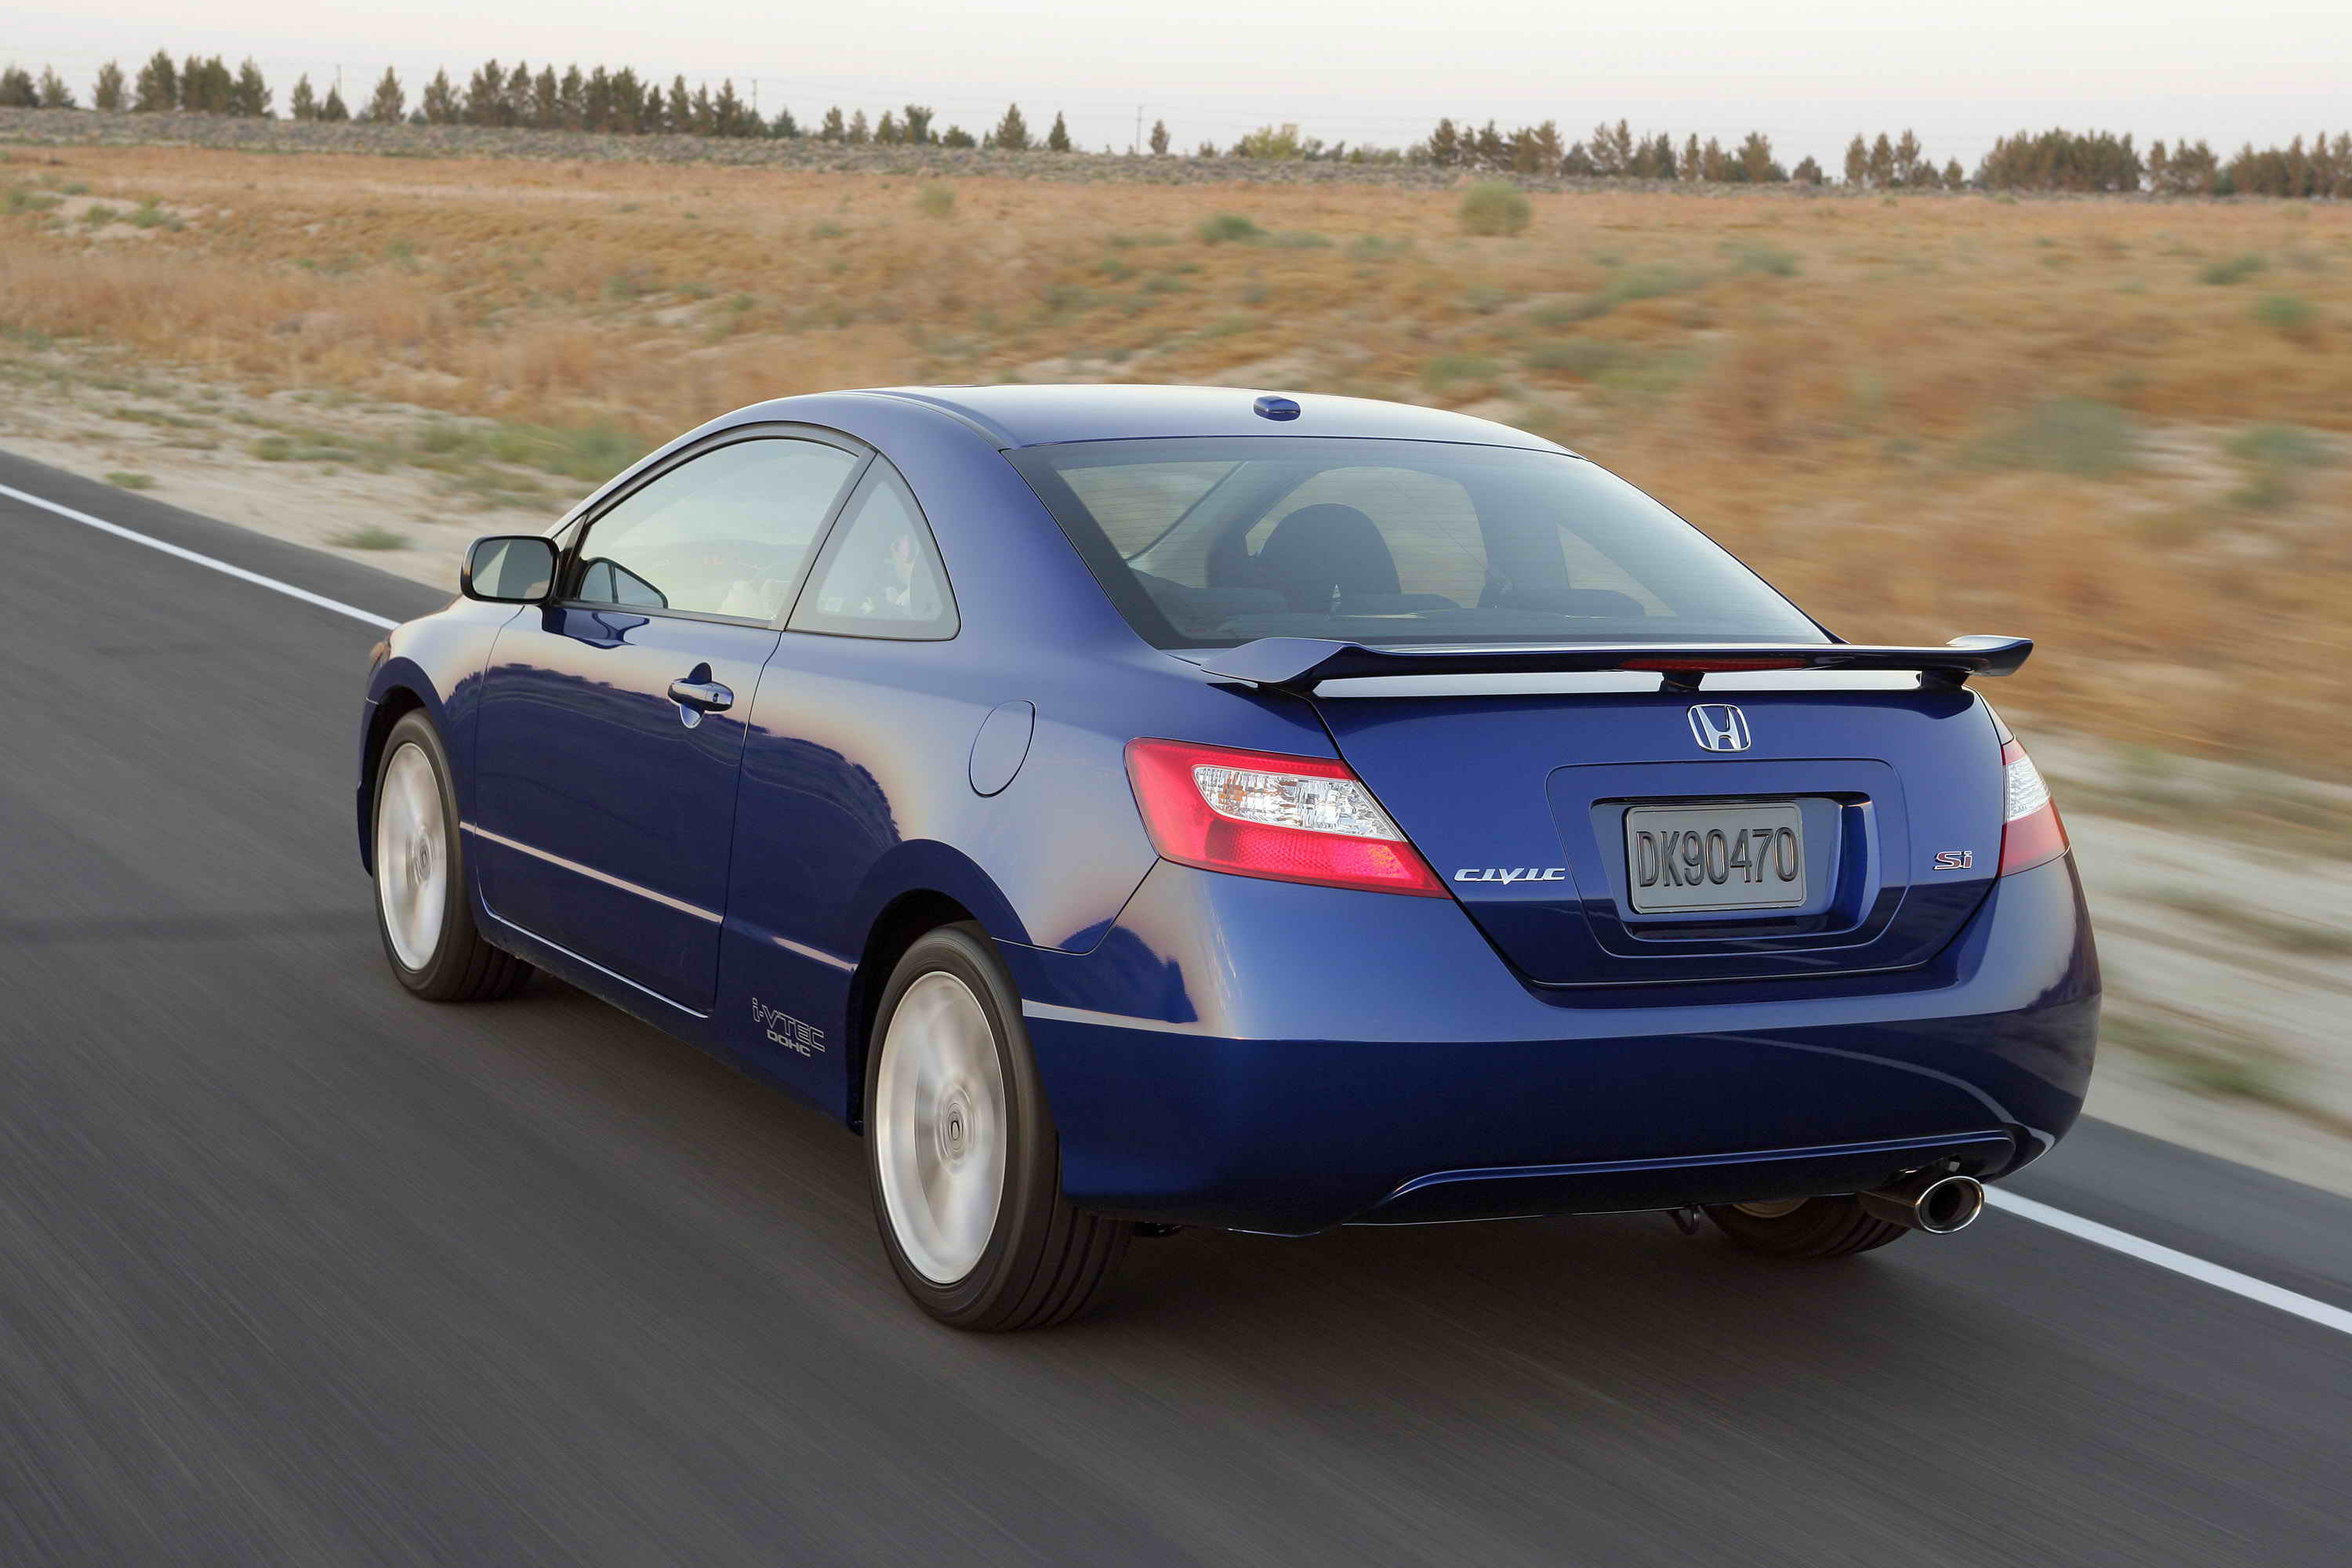 2006 Honda Civic Si Review - Top Speed